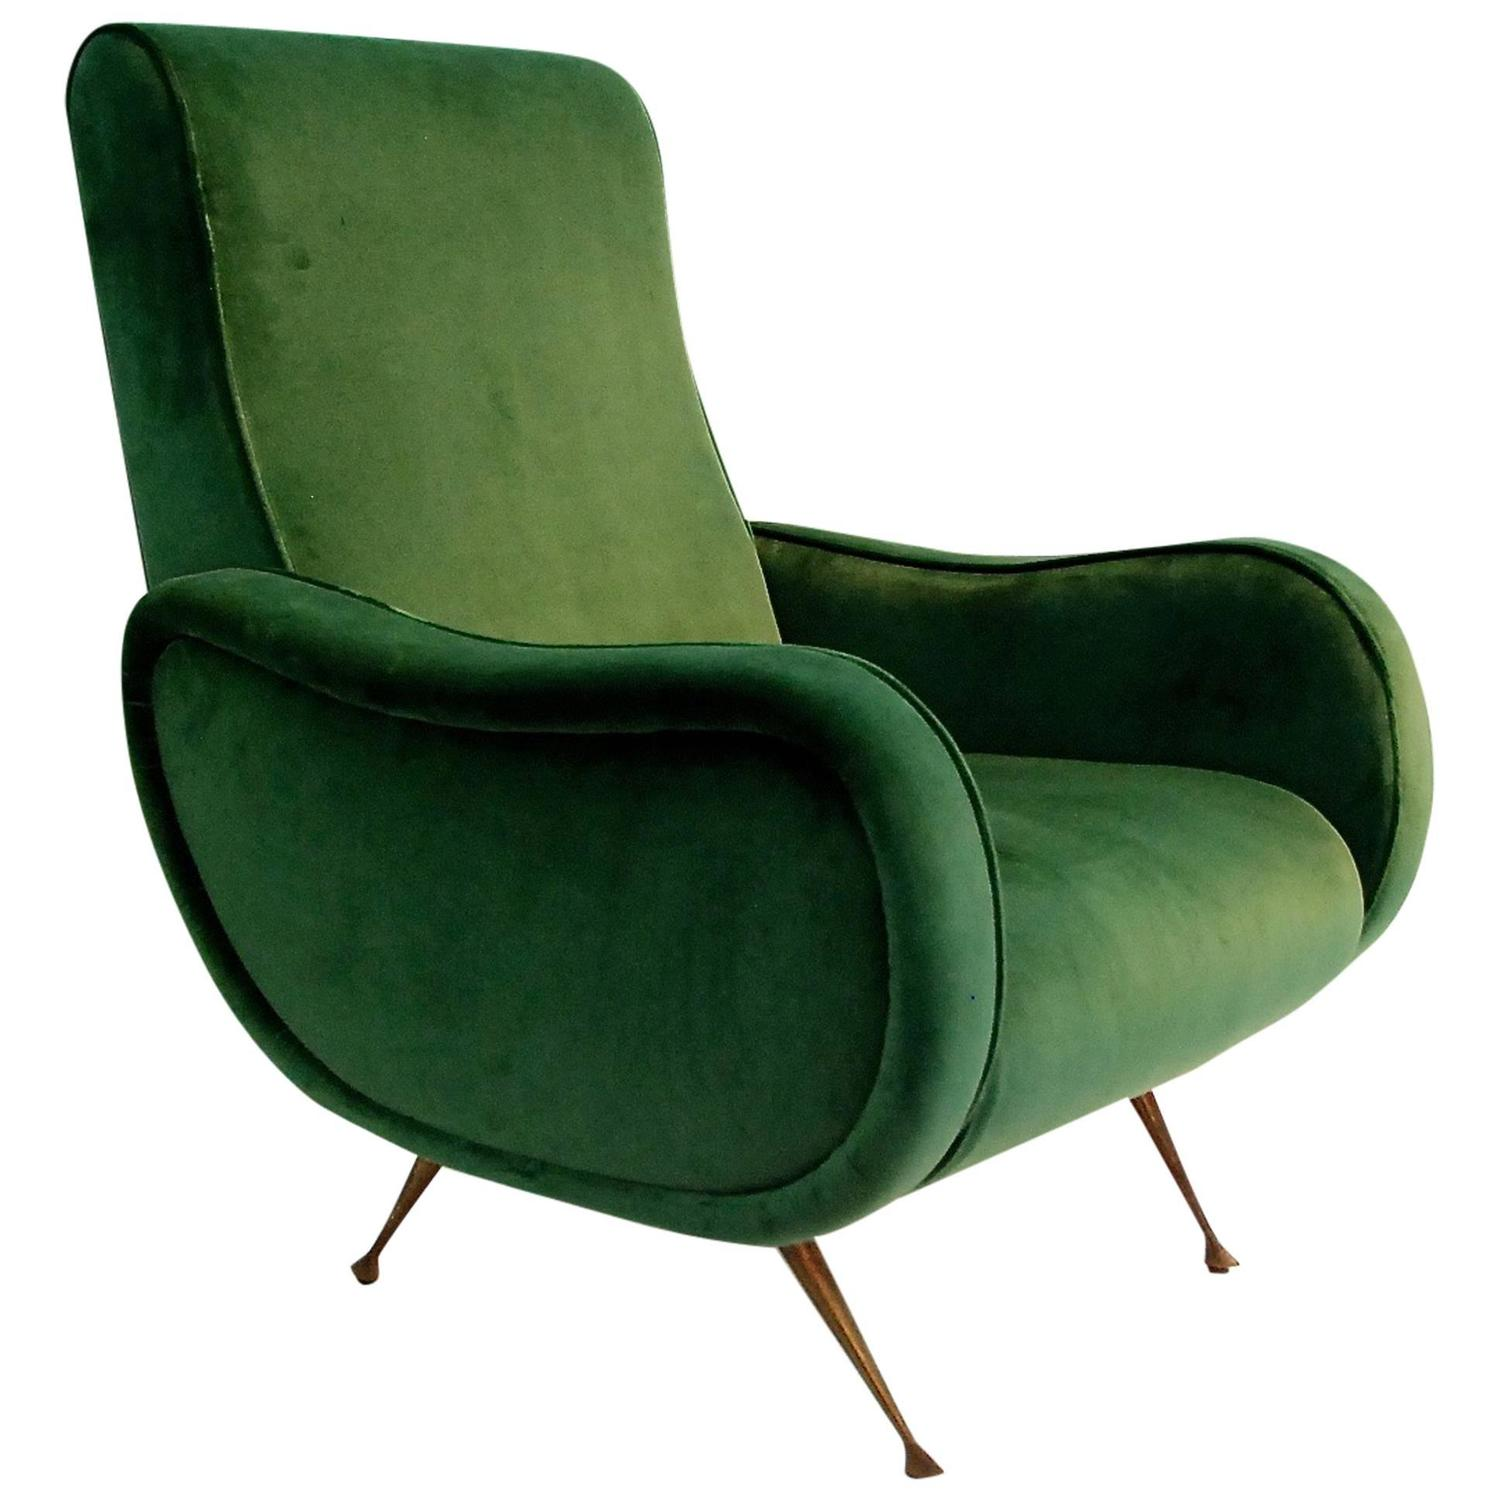 Marco zanuso lady chair at 1stdibs for Chair in italian